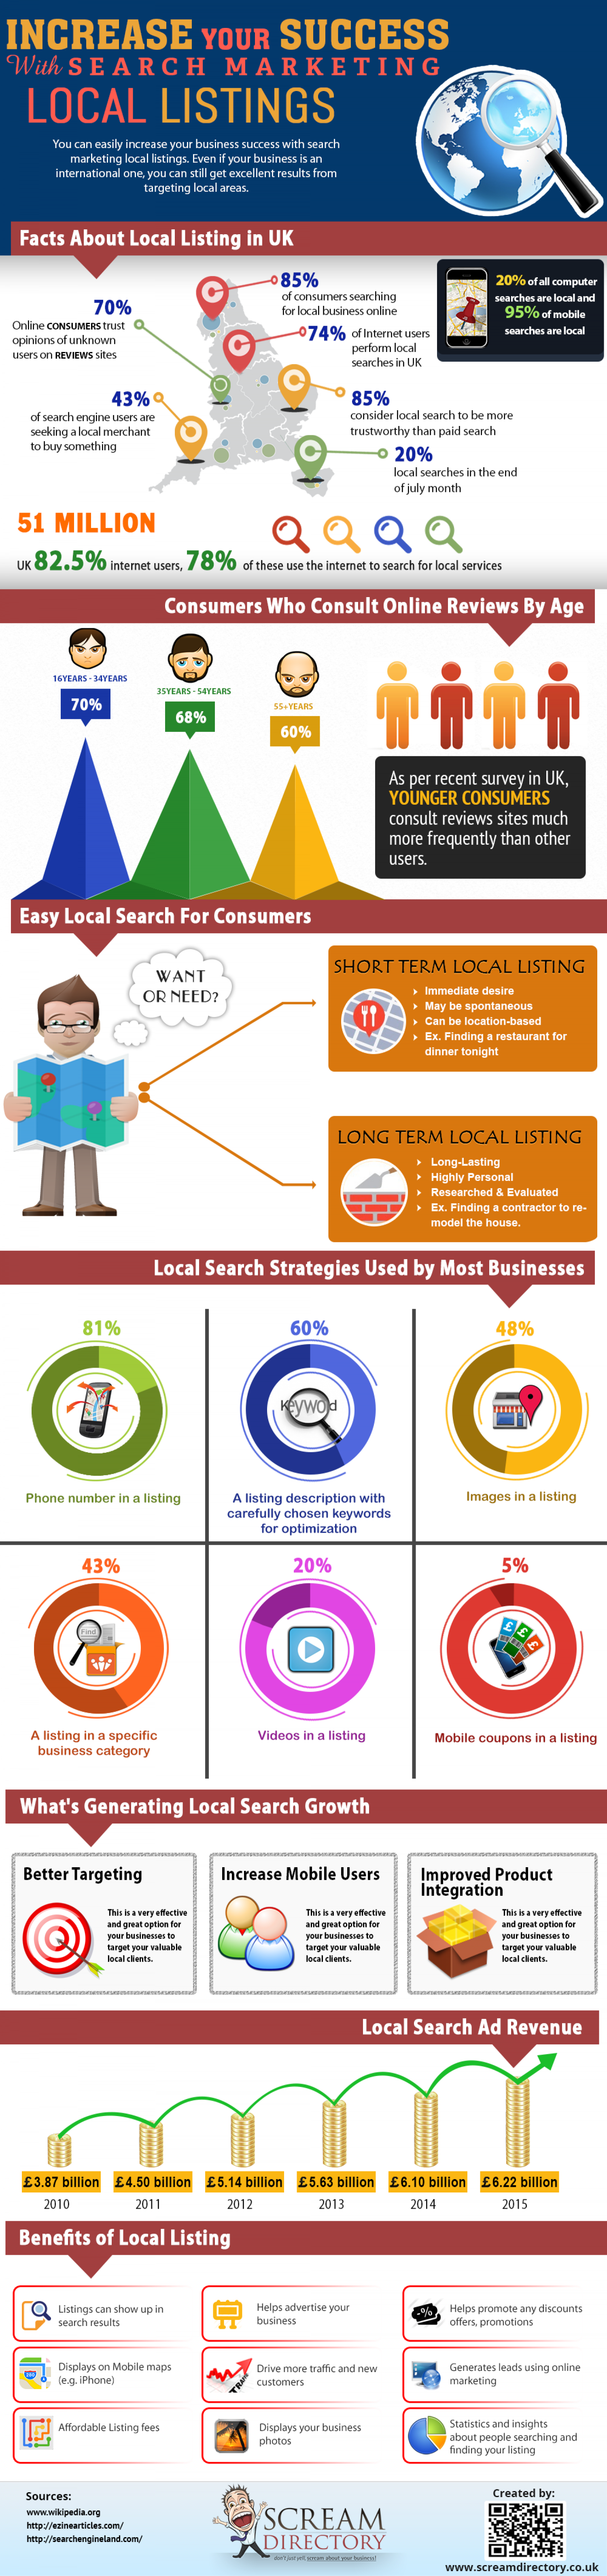 Increase your Success with search marketing Local listings Infographic